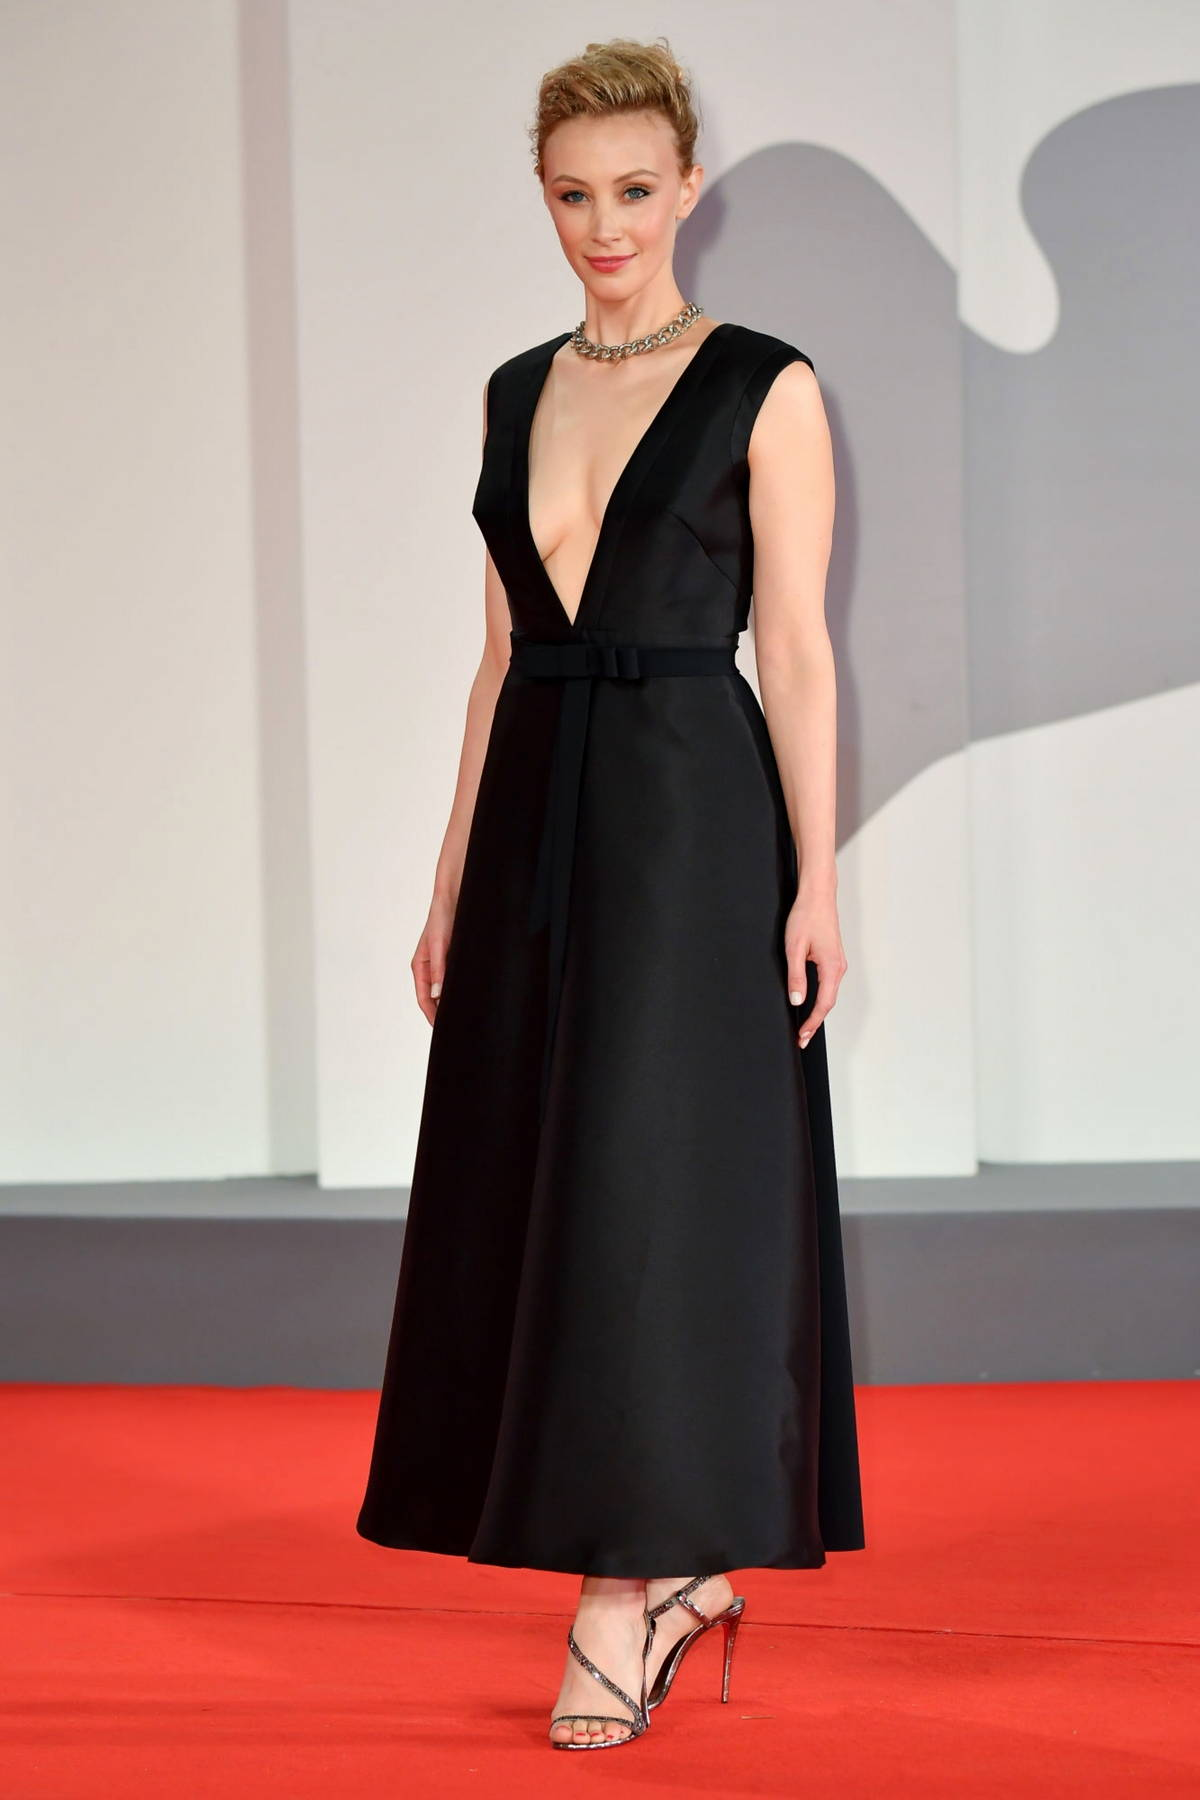 Sarah Gadon attends the Premiere of 'Mona Lisa And The Blood Moon' during the 78th Venice International Film Festival in Venice, Italy